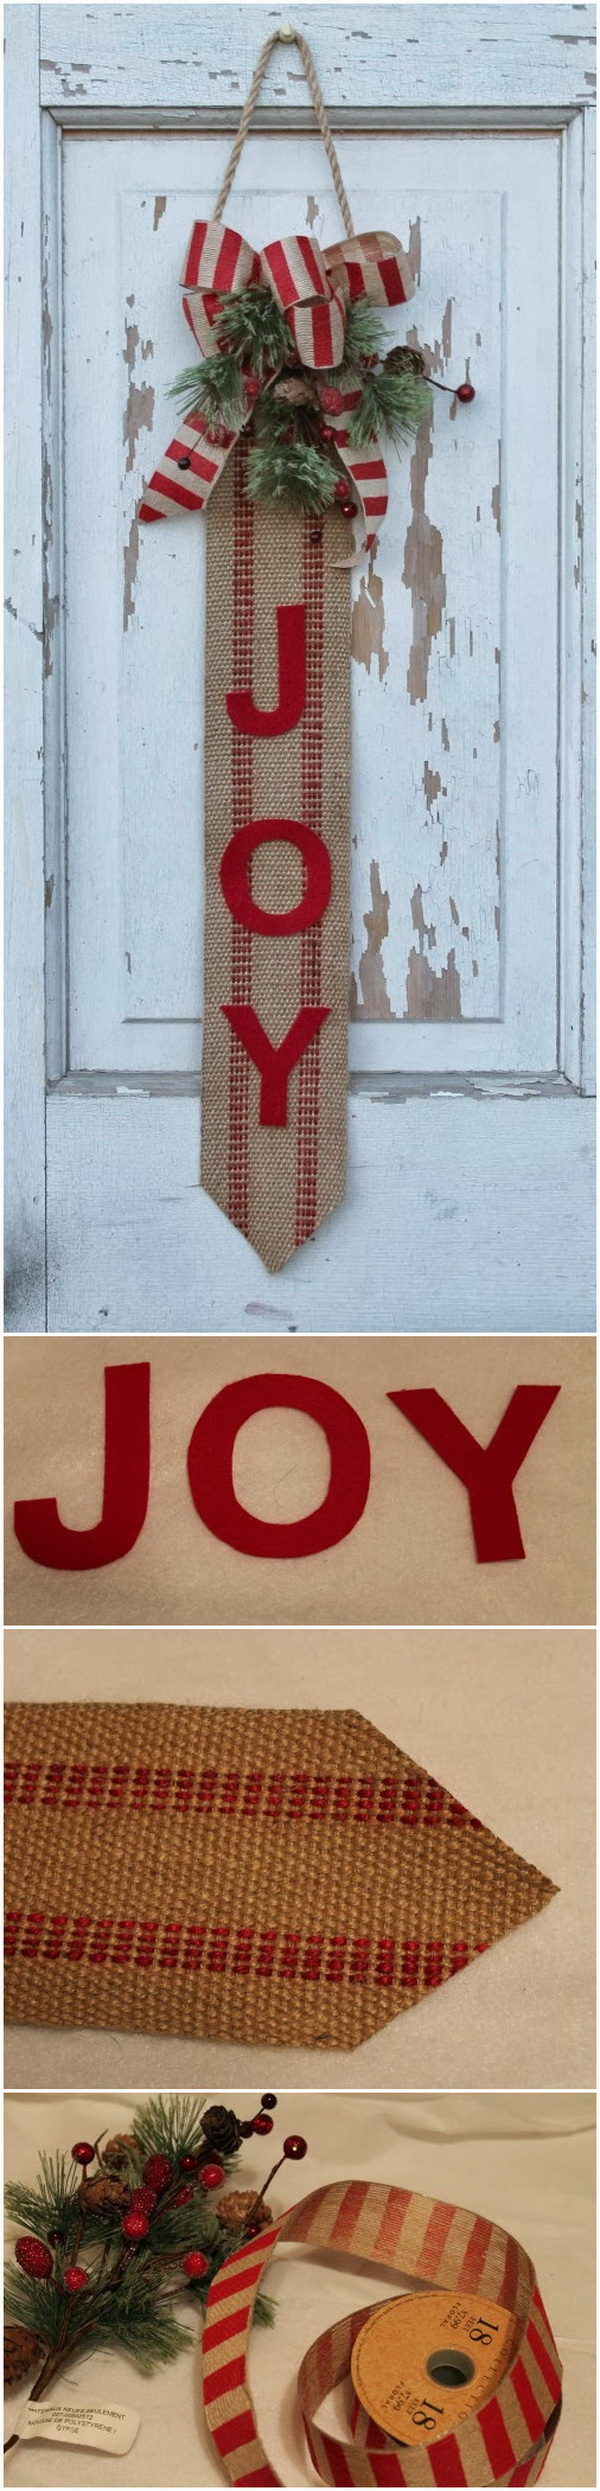 JOY Christmas Door Hanger.